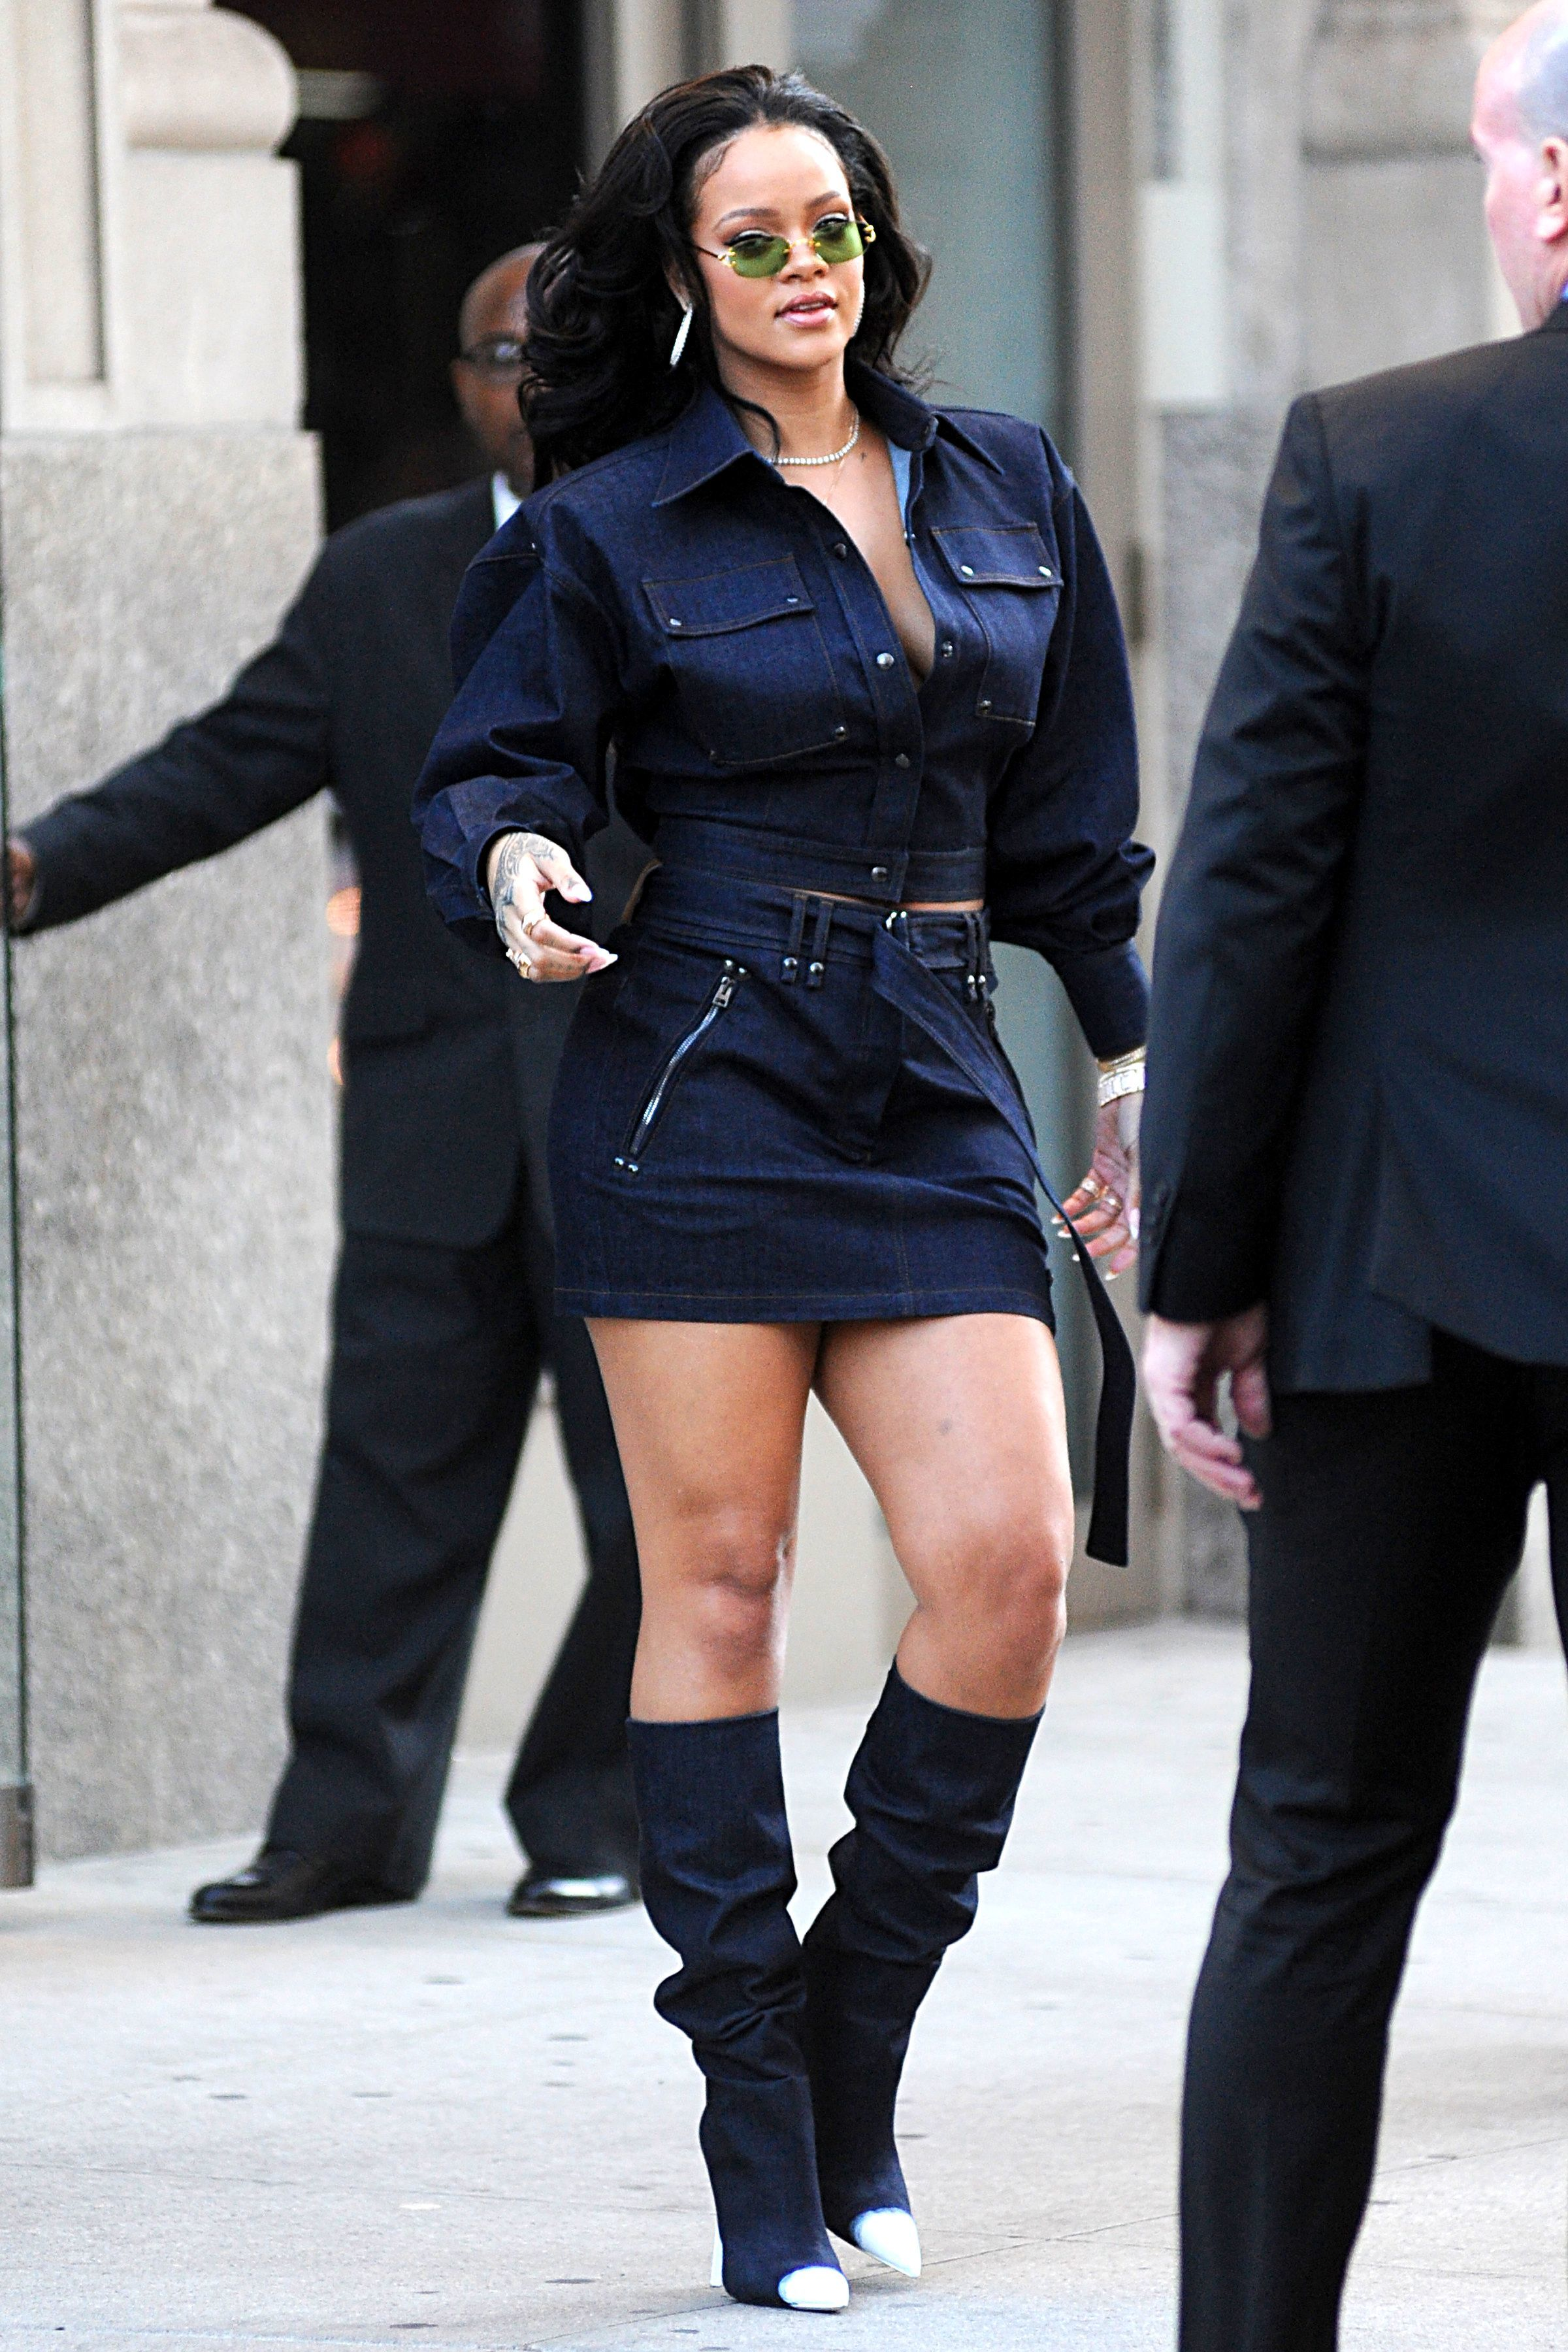 Rihanna steps out in New York City on Oct. 12, 2017.